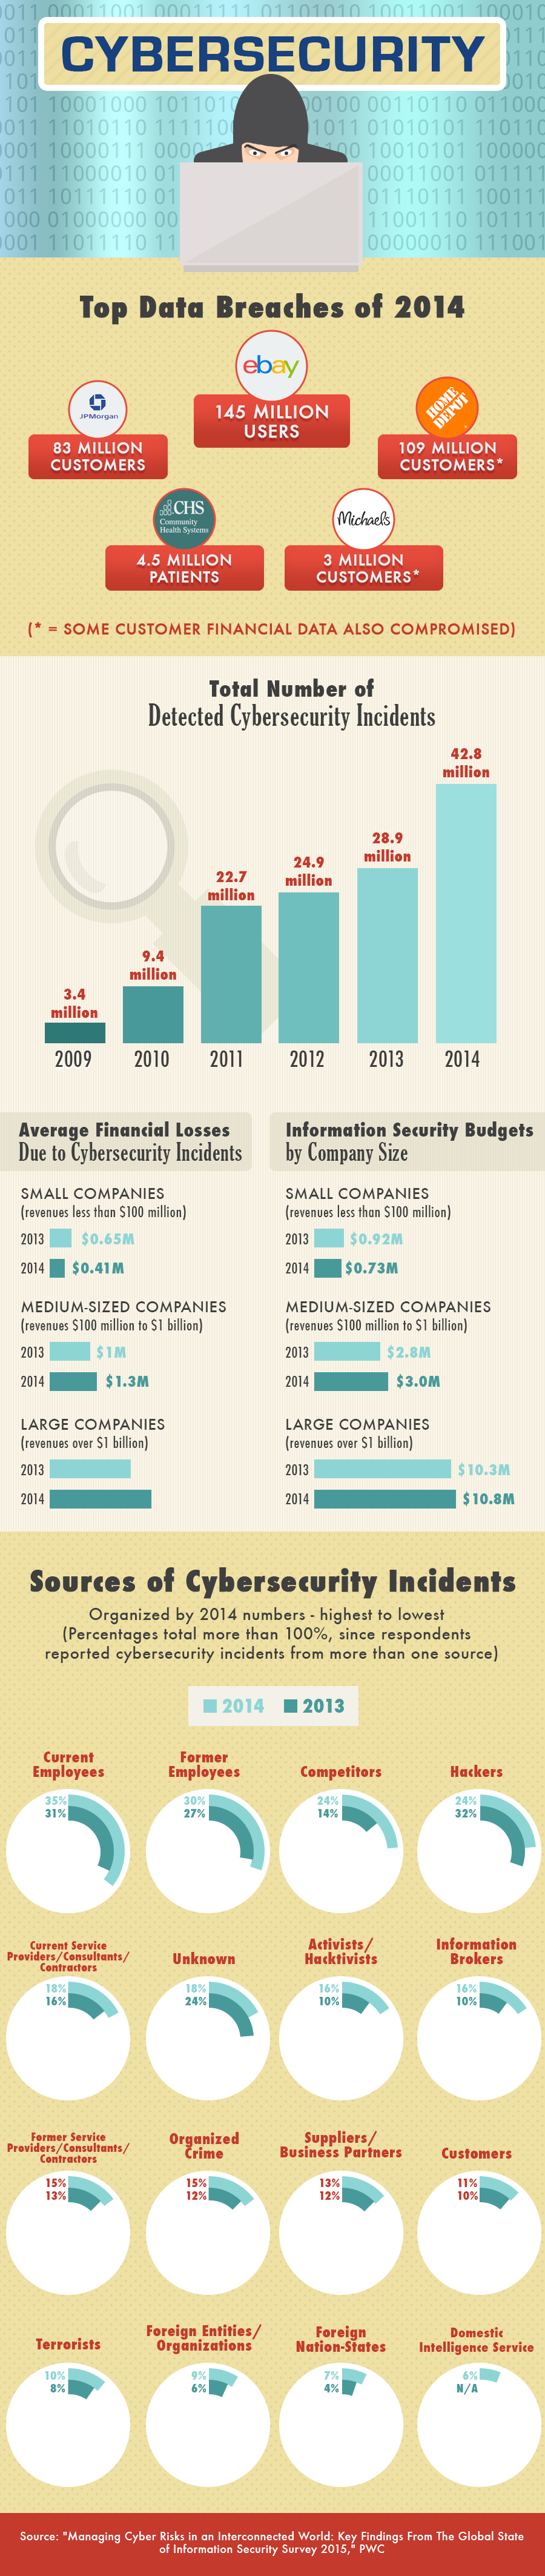 Infographic: Top Data Breaches of 2014